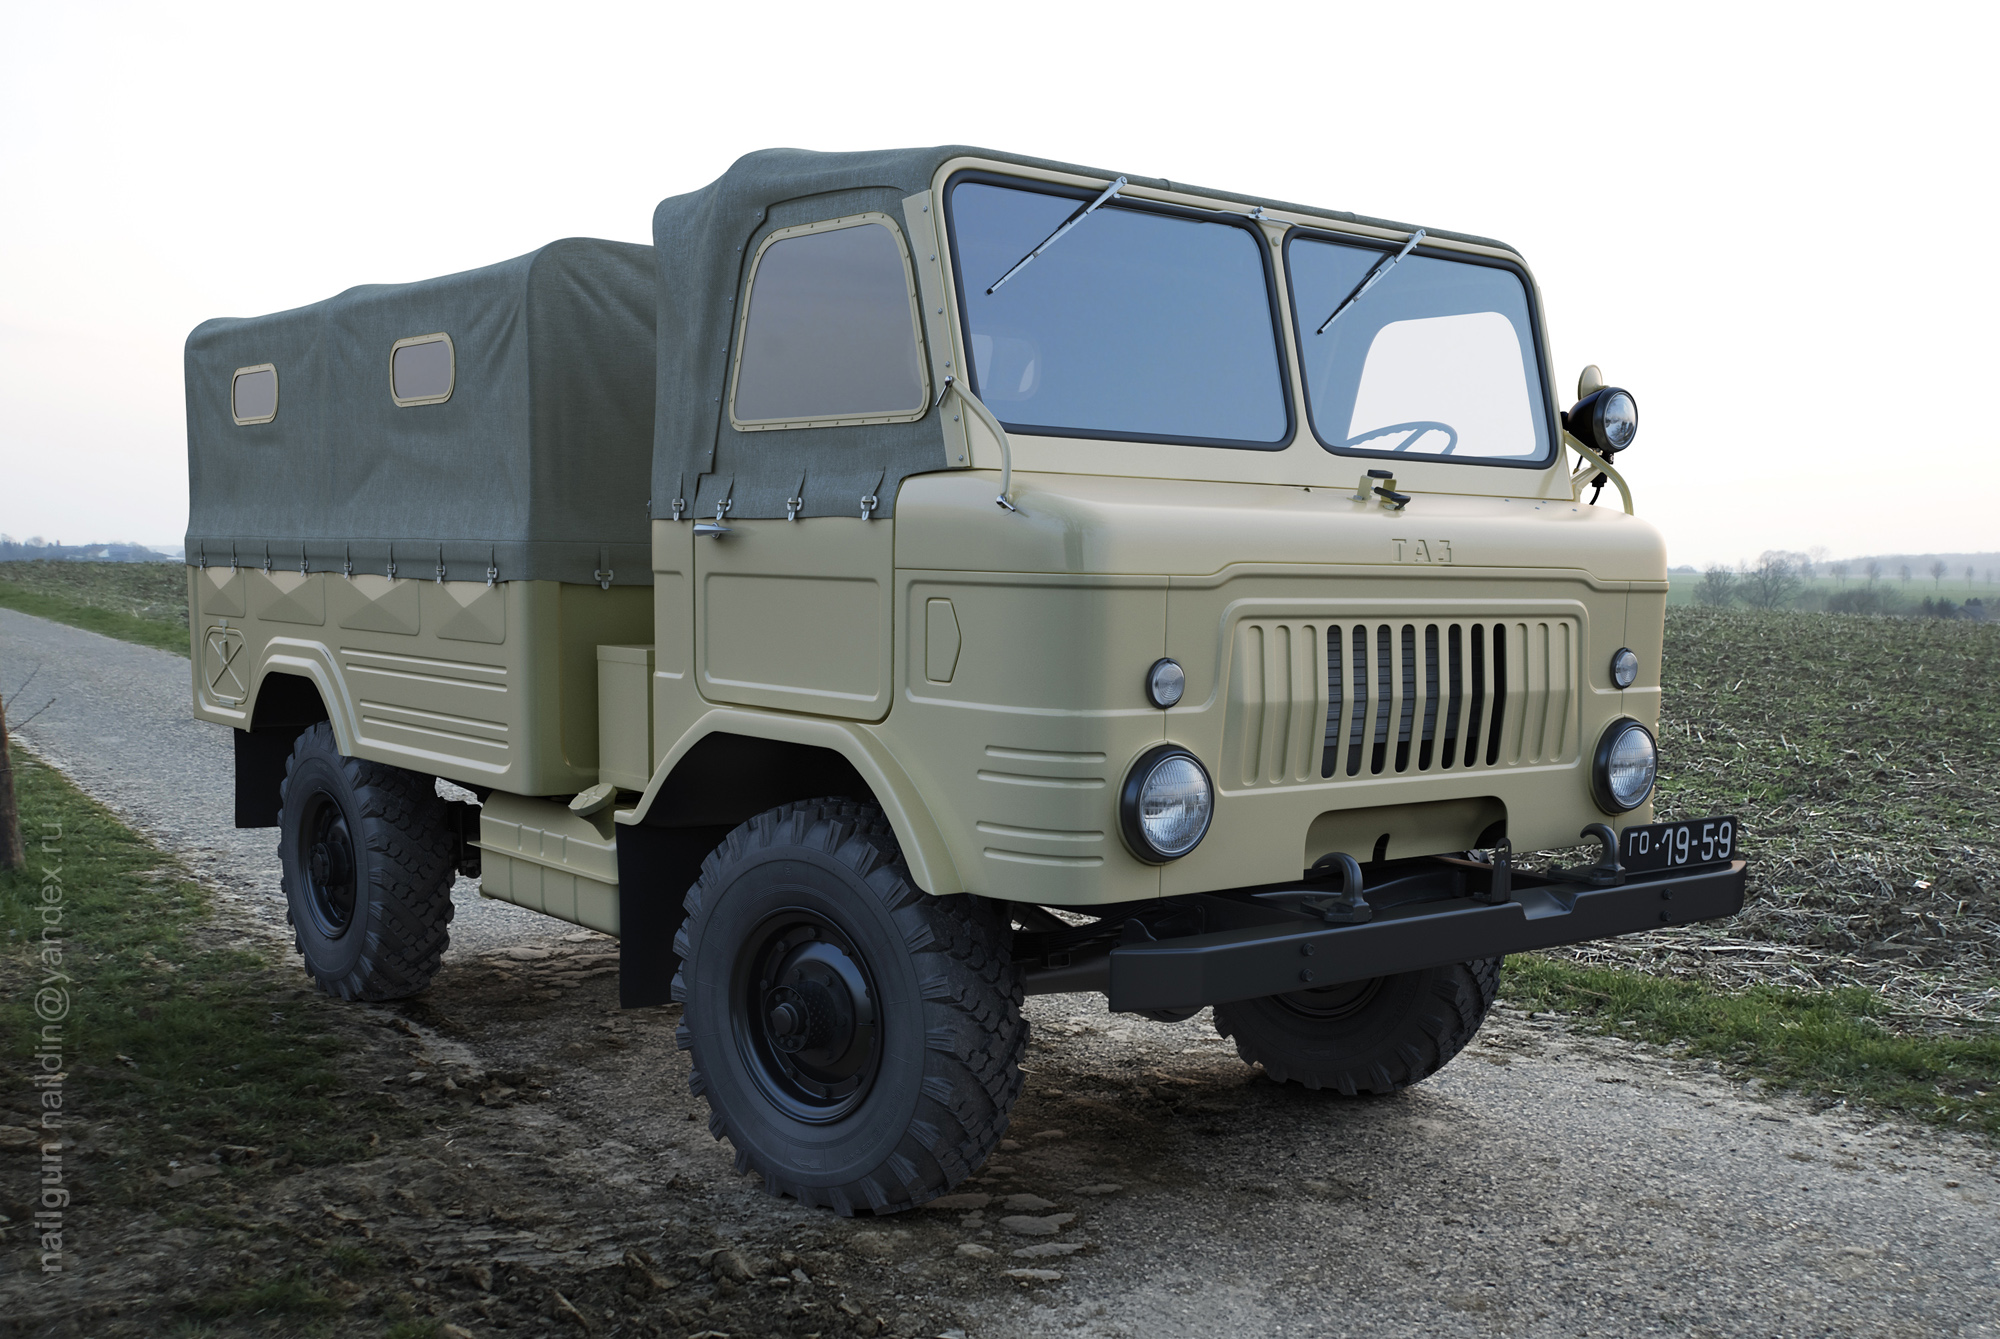 Russian army truck, 1959 3d art